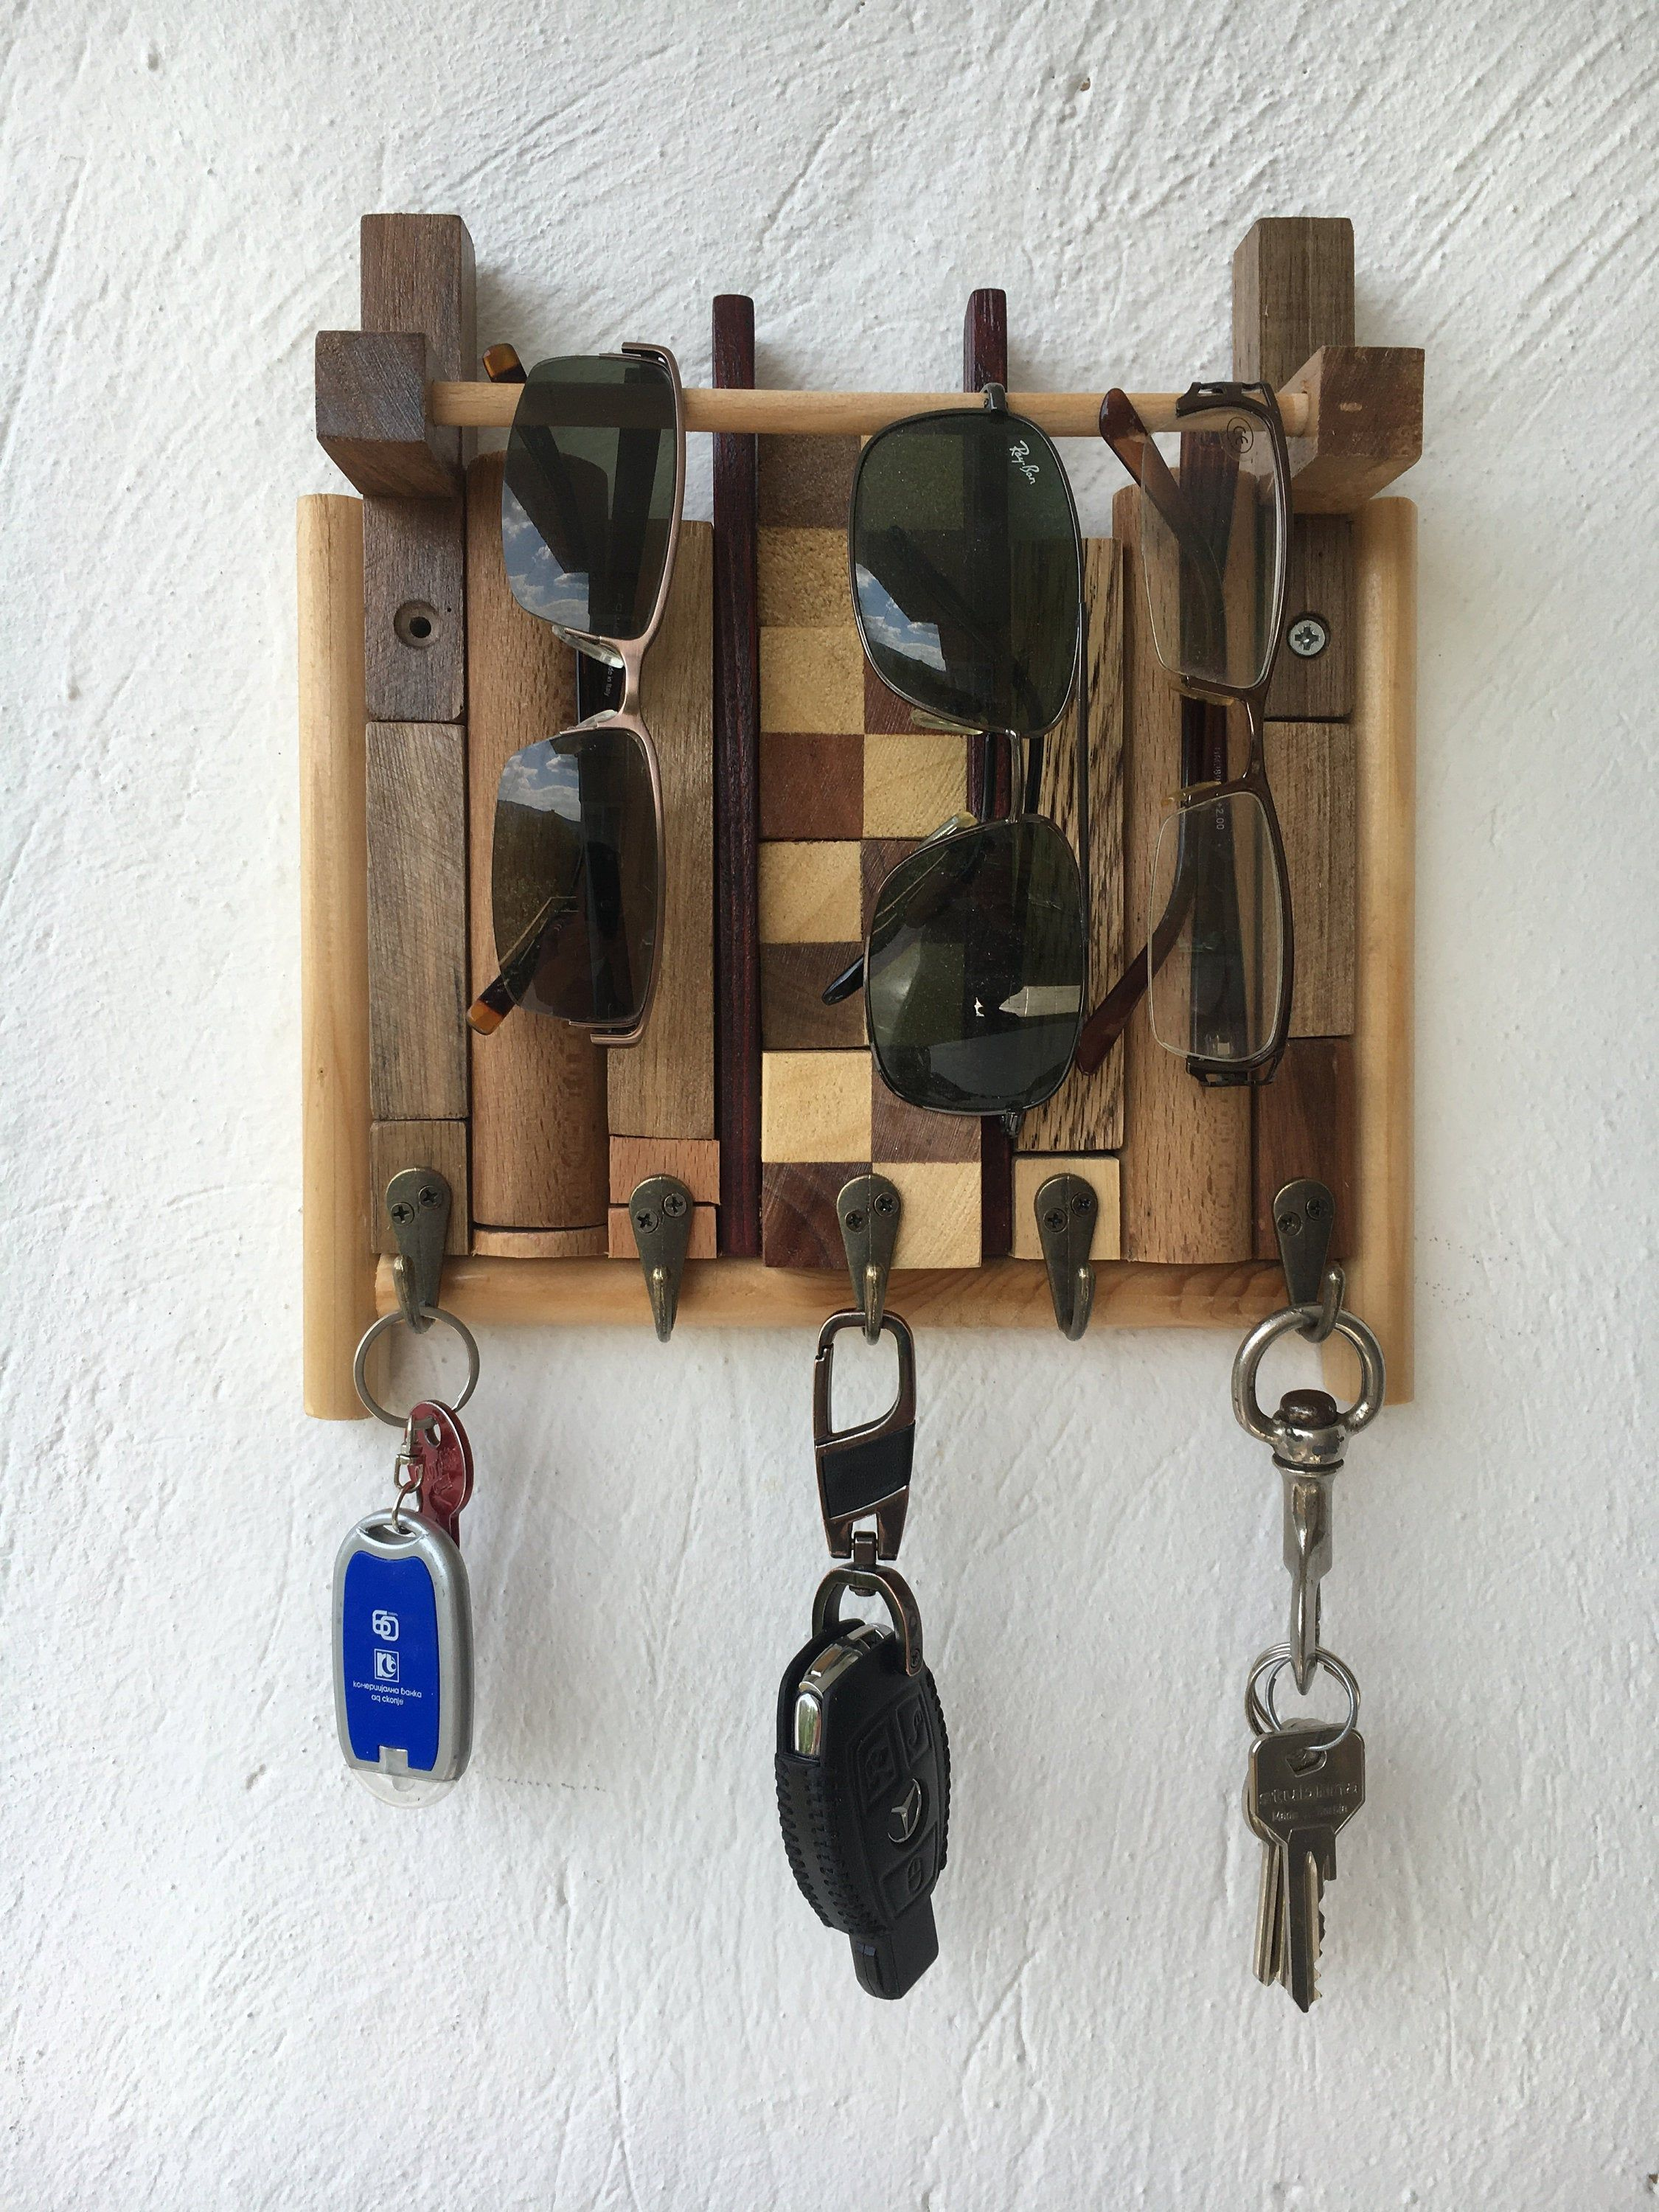 Sunglasses Holder And Key Rack Wall Eyeglass Display Wall Mount